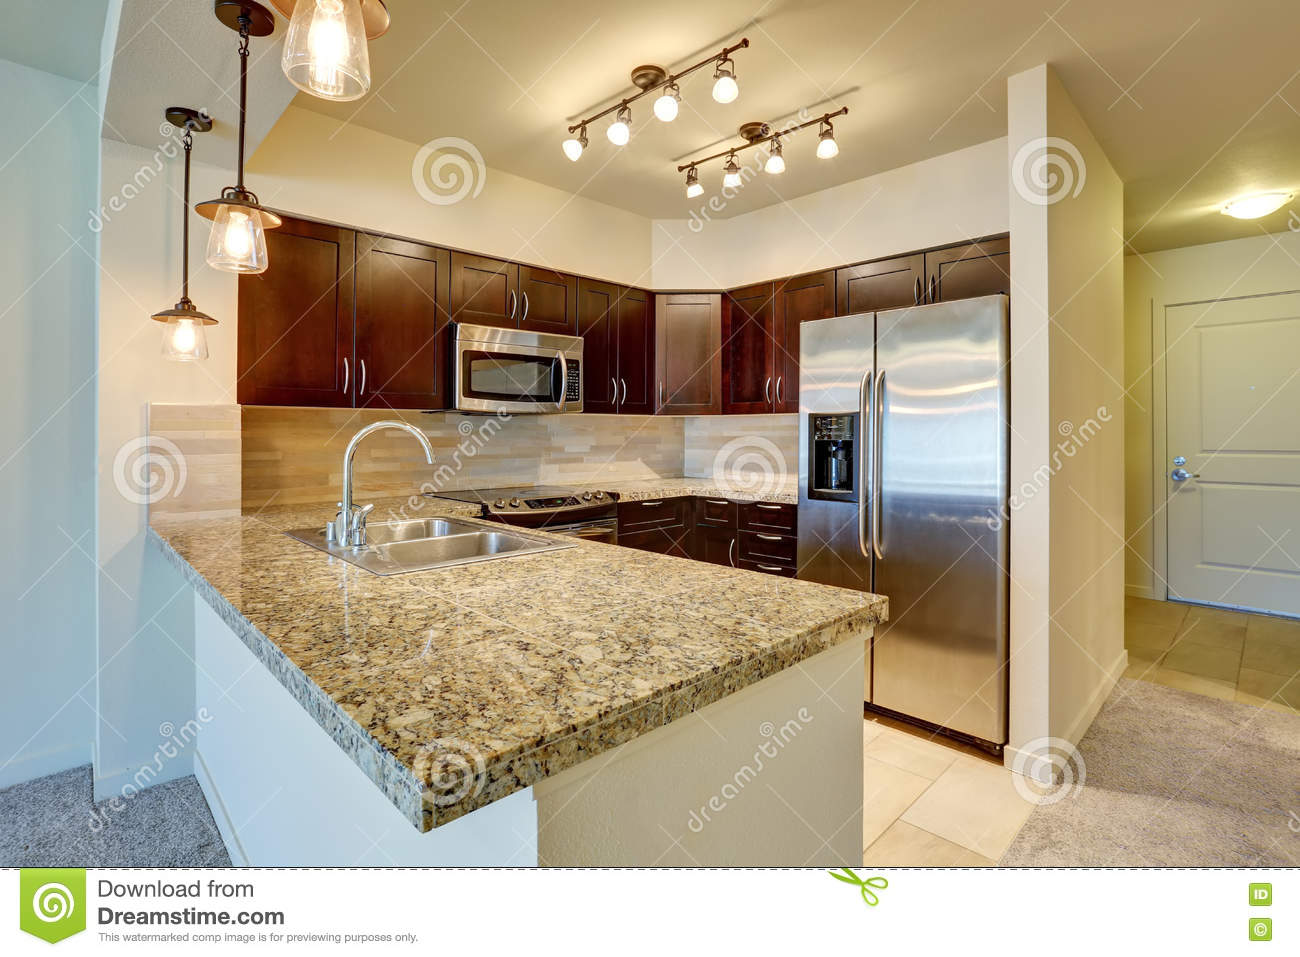 Modern Kitchen Interior With Mahogany Cabinets Stock Photo Image Of Appliances Ceiling 75588948